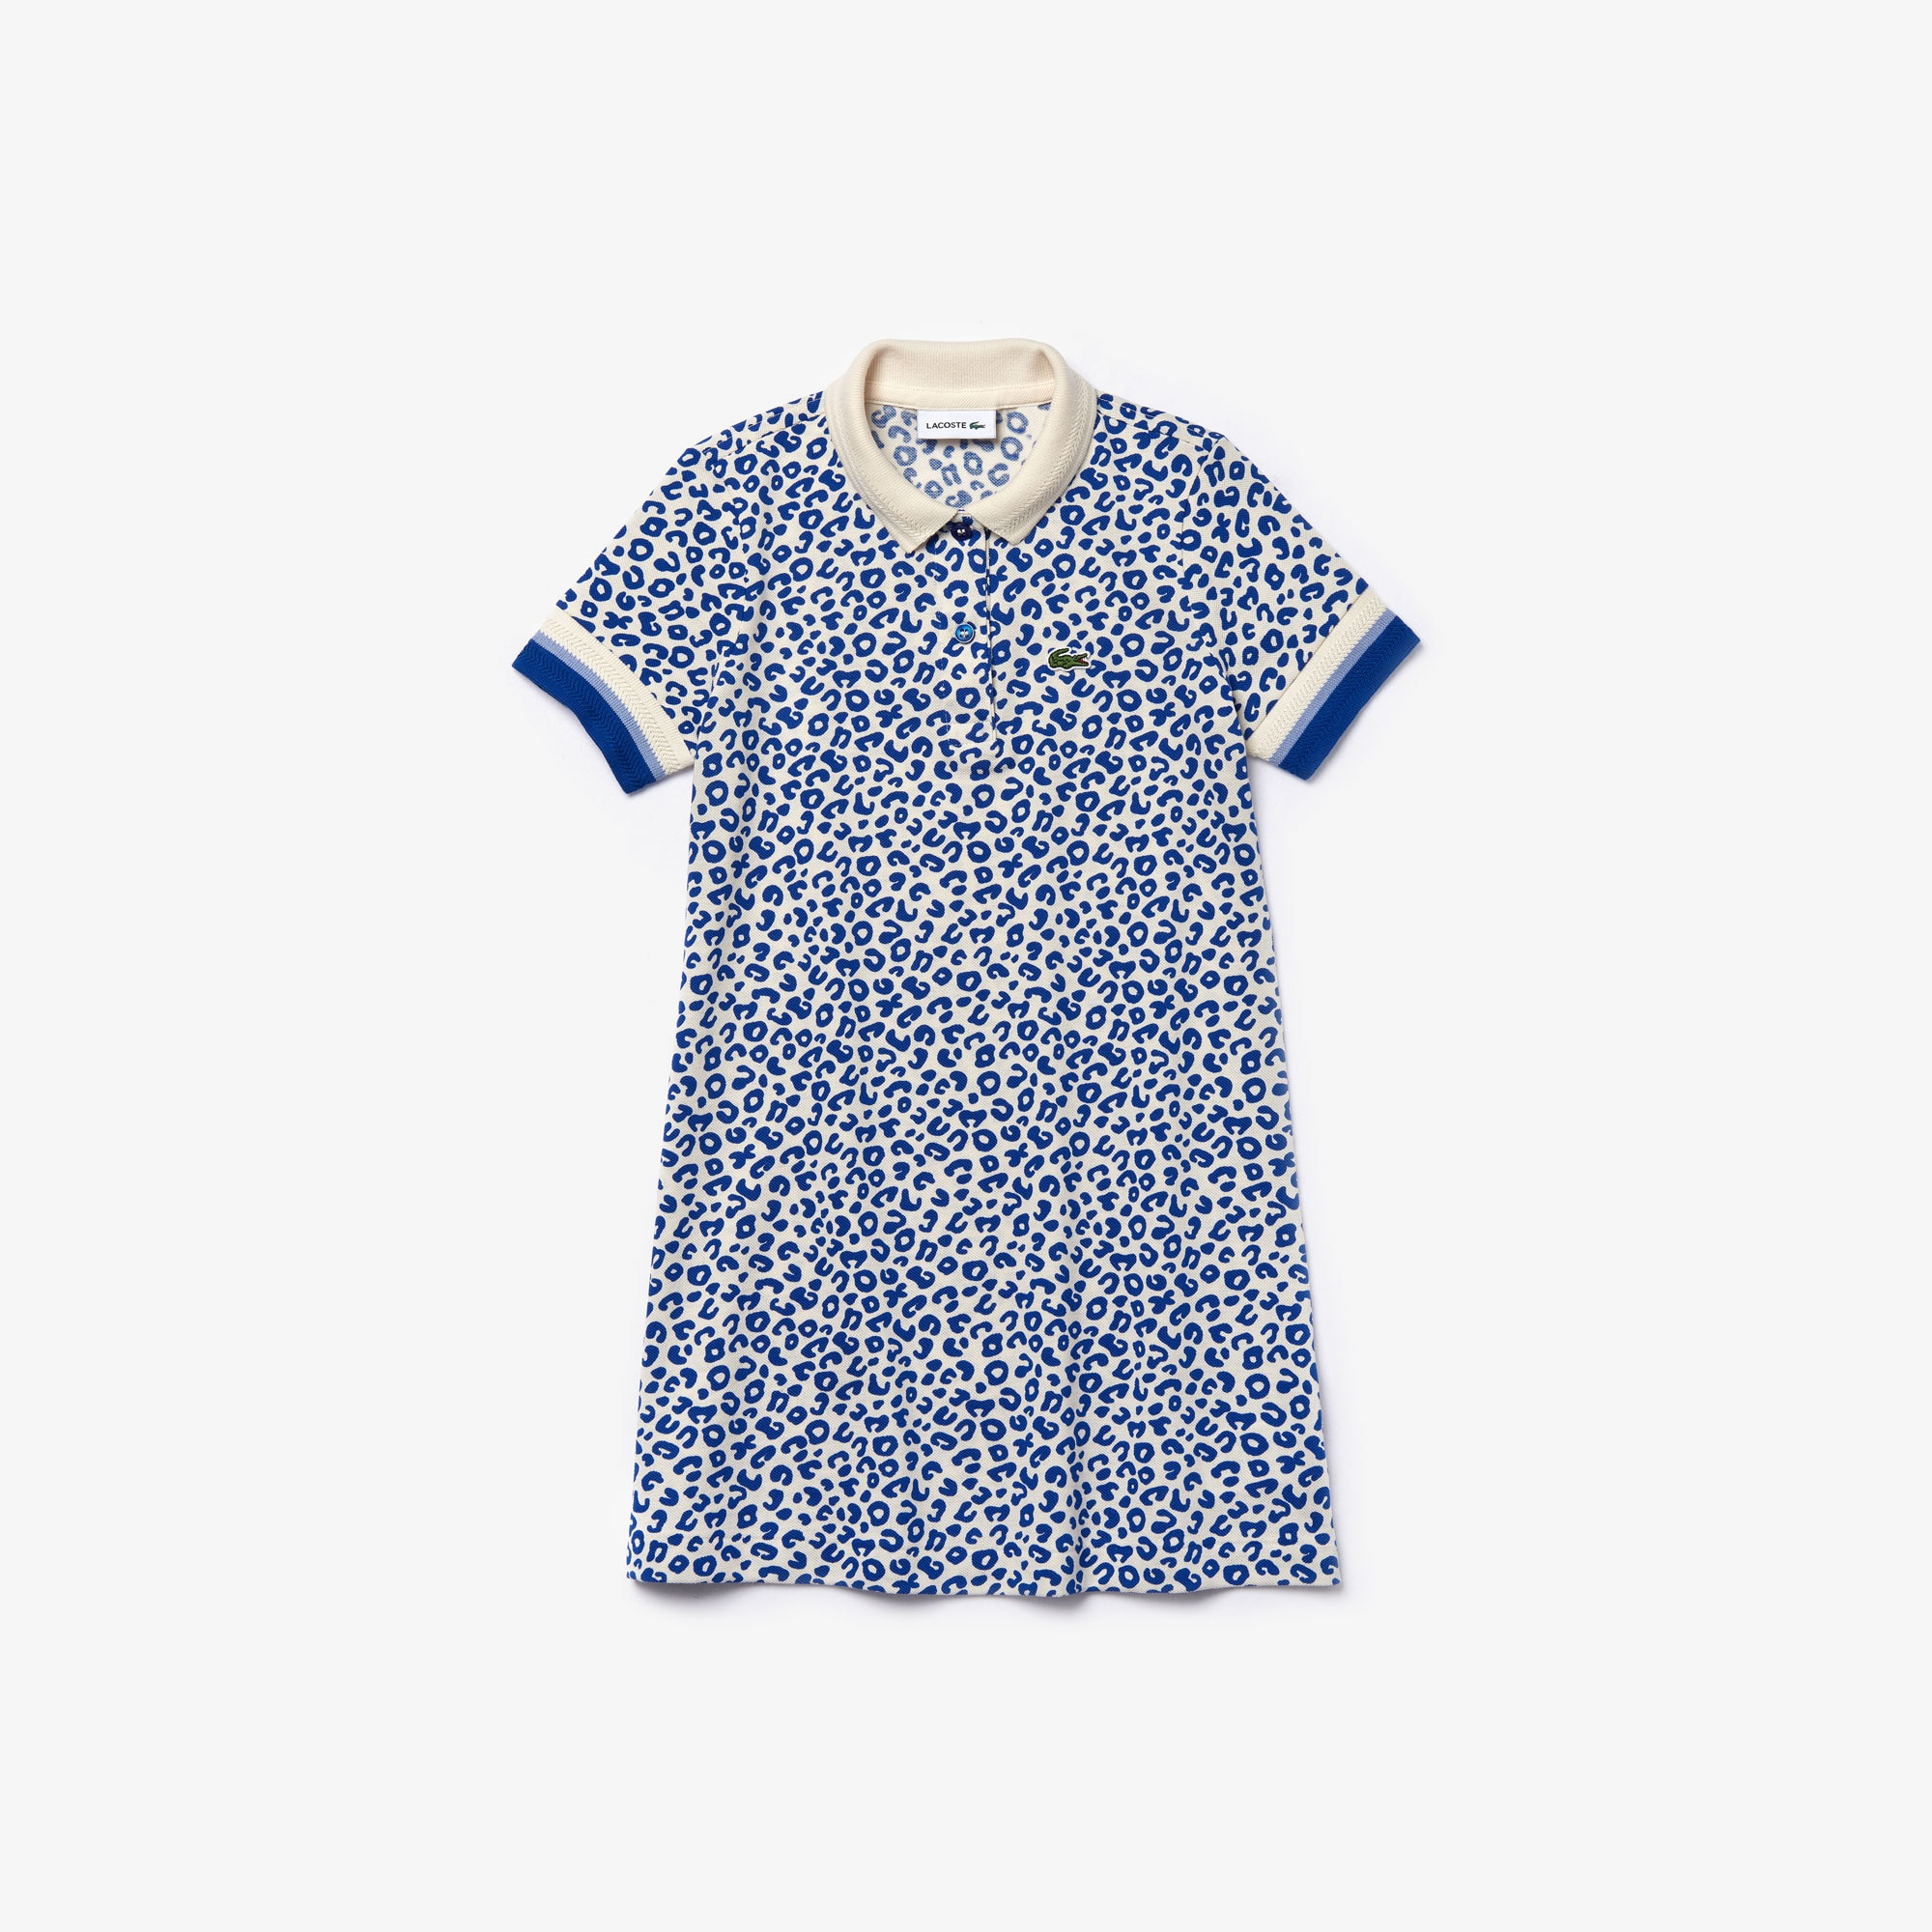 라코스테 Lacoste Girls' Leopard Print Cotton Petit Pique Polo Dress,White / Blue • X7Y